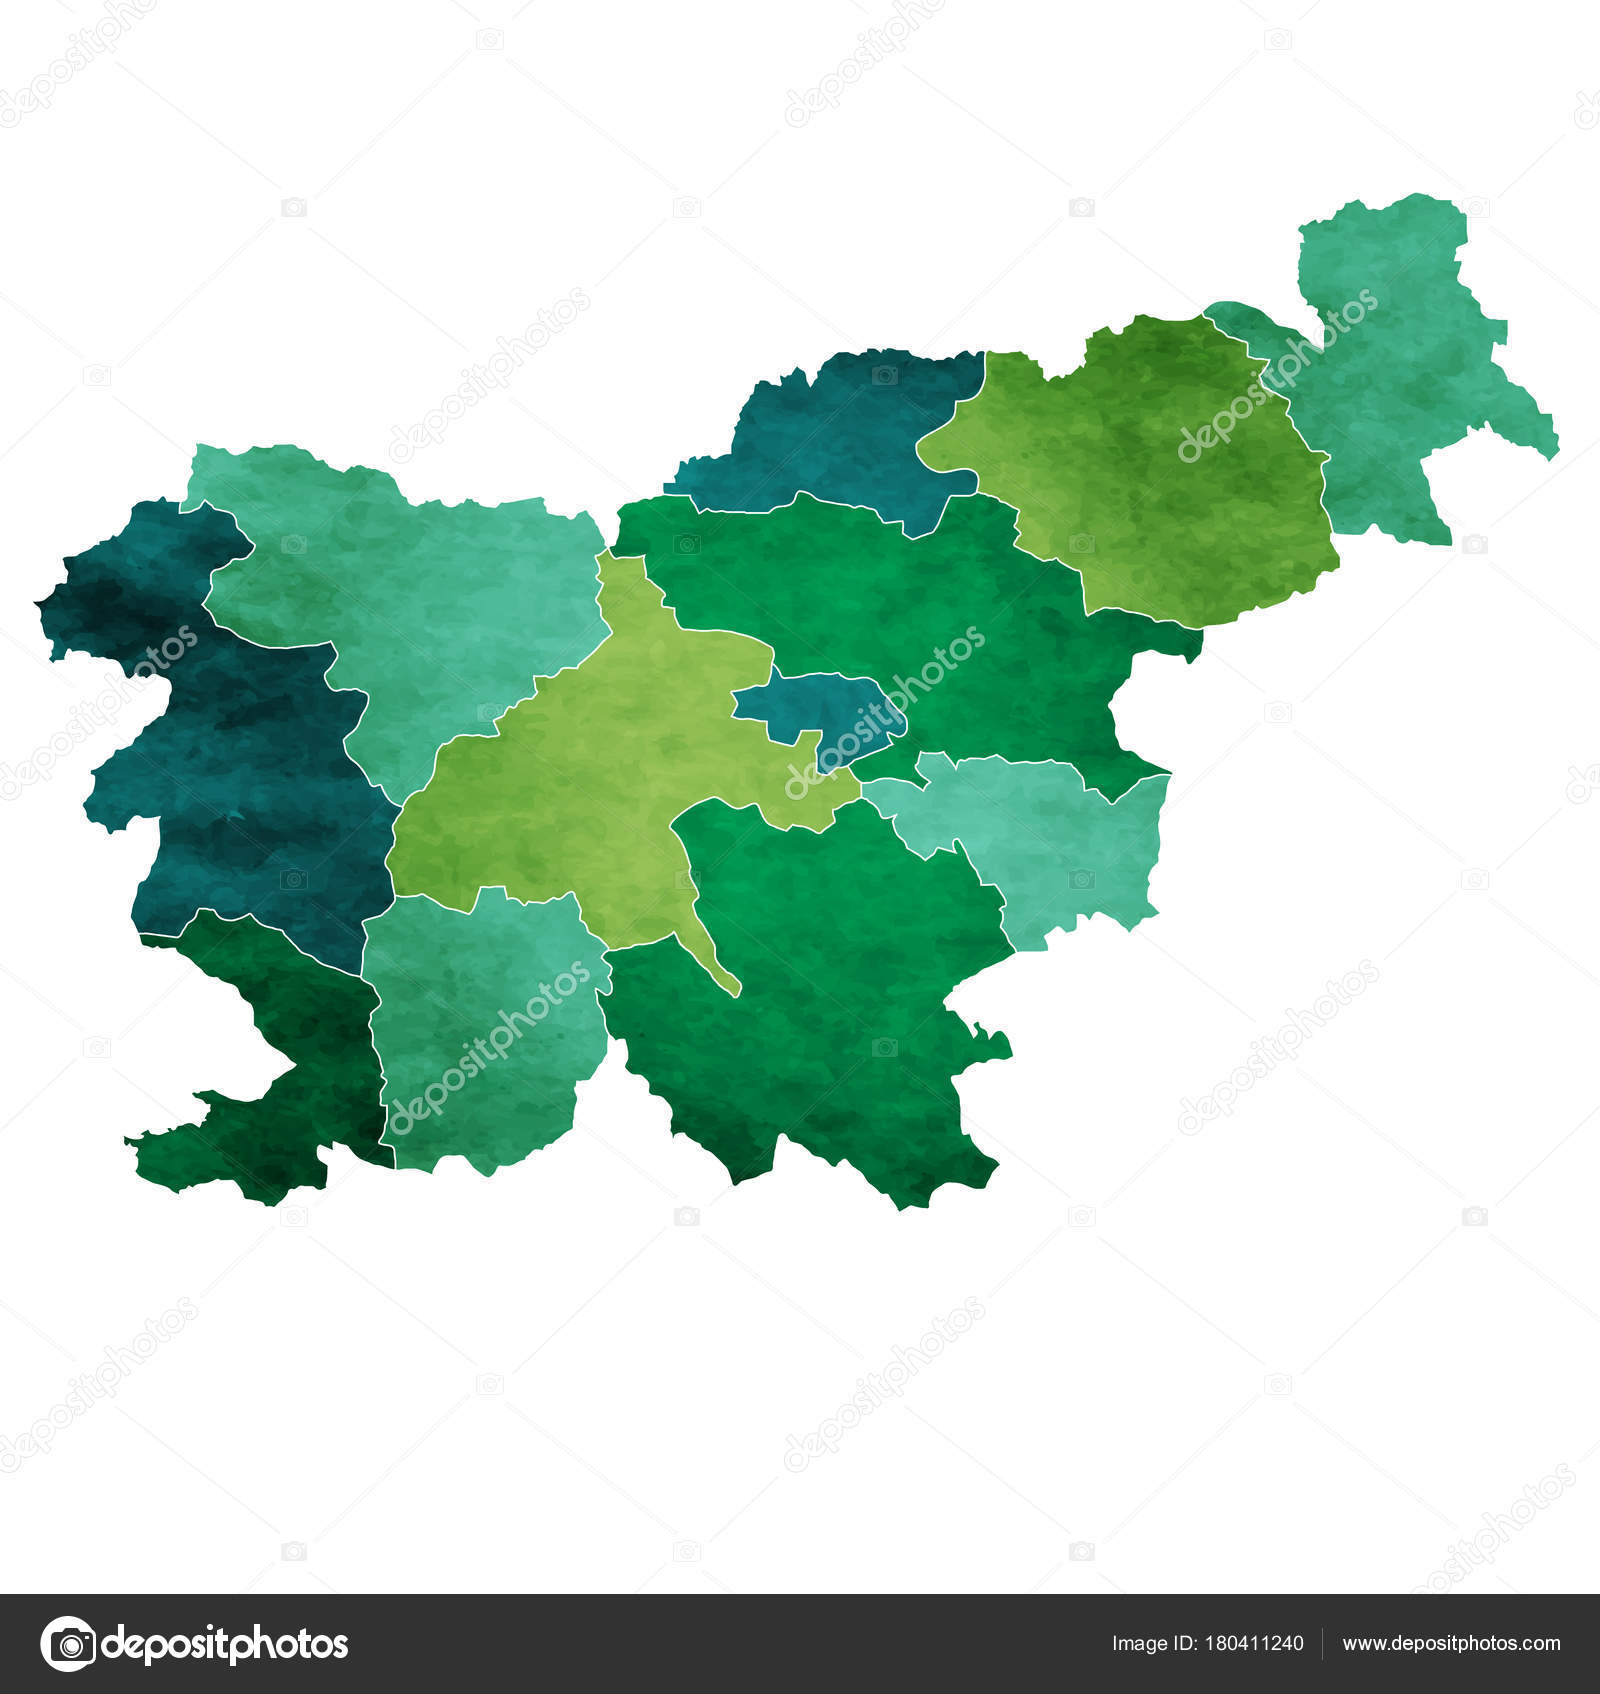 Picture of: Slovenia World Map Country Icon Stock Vector C Jboy24 180411240